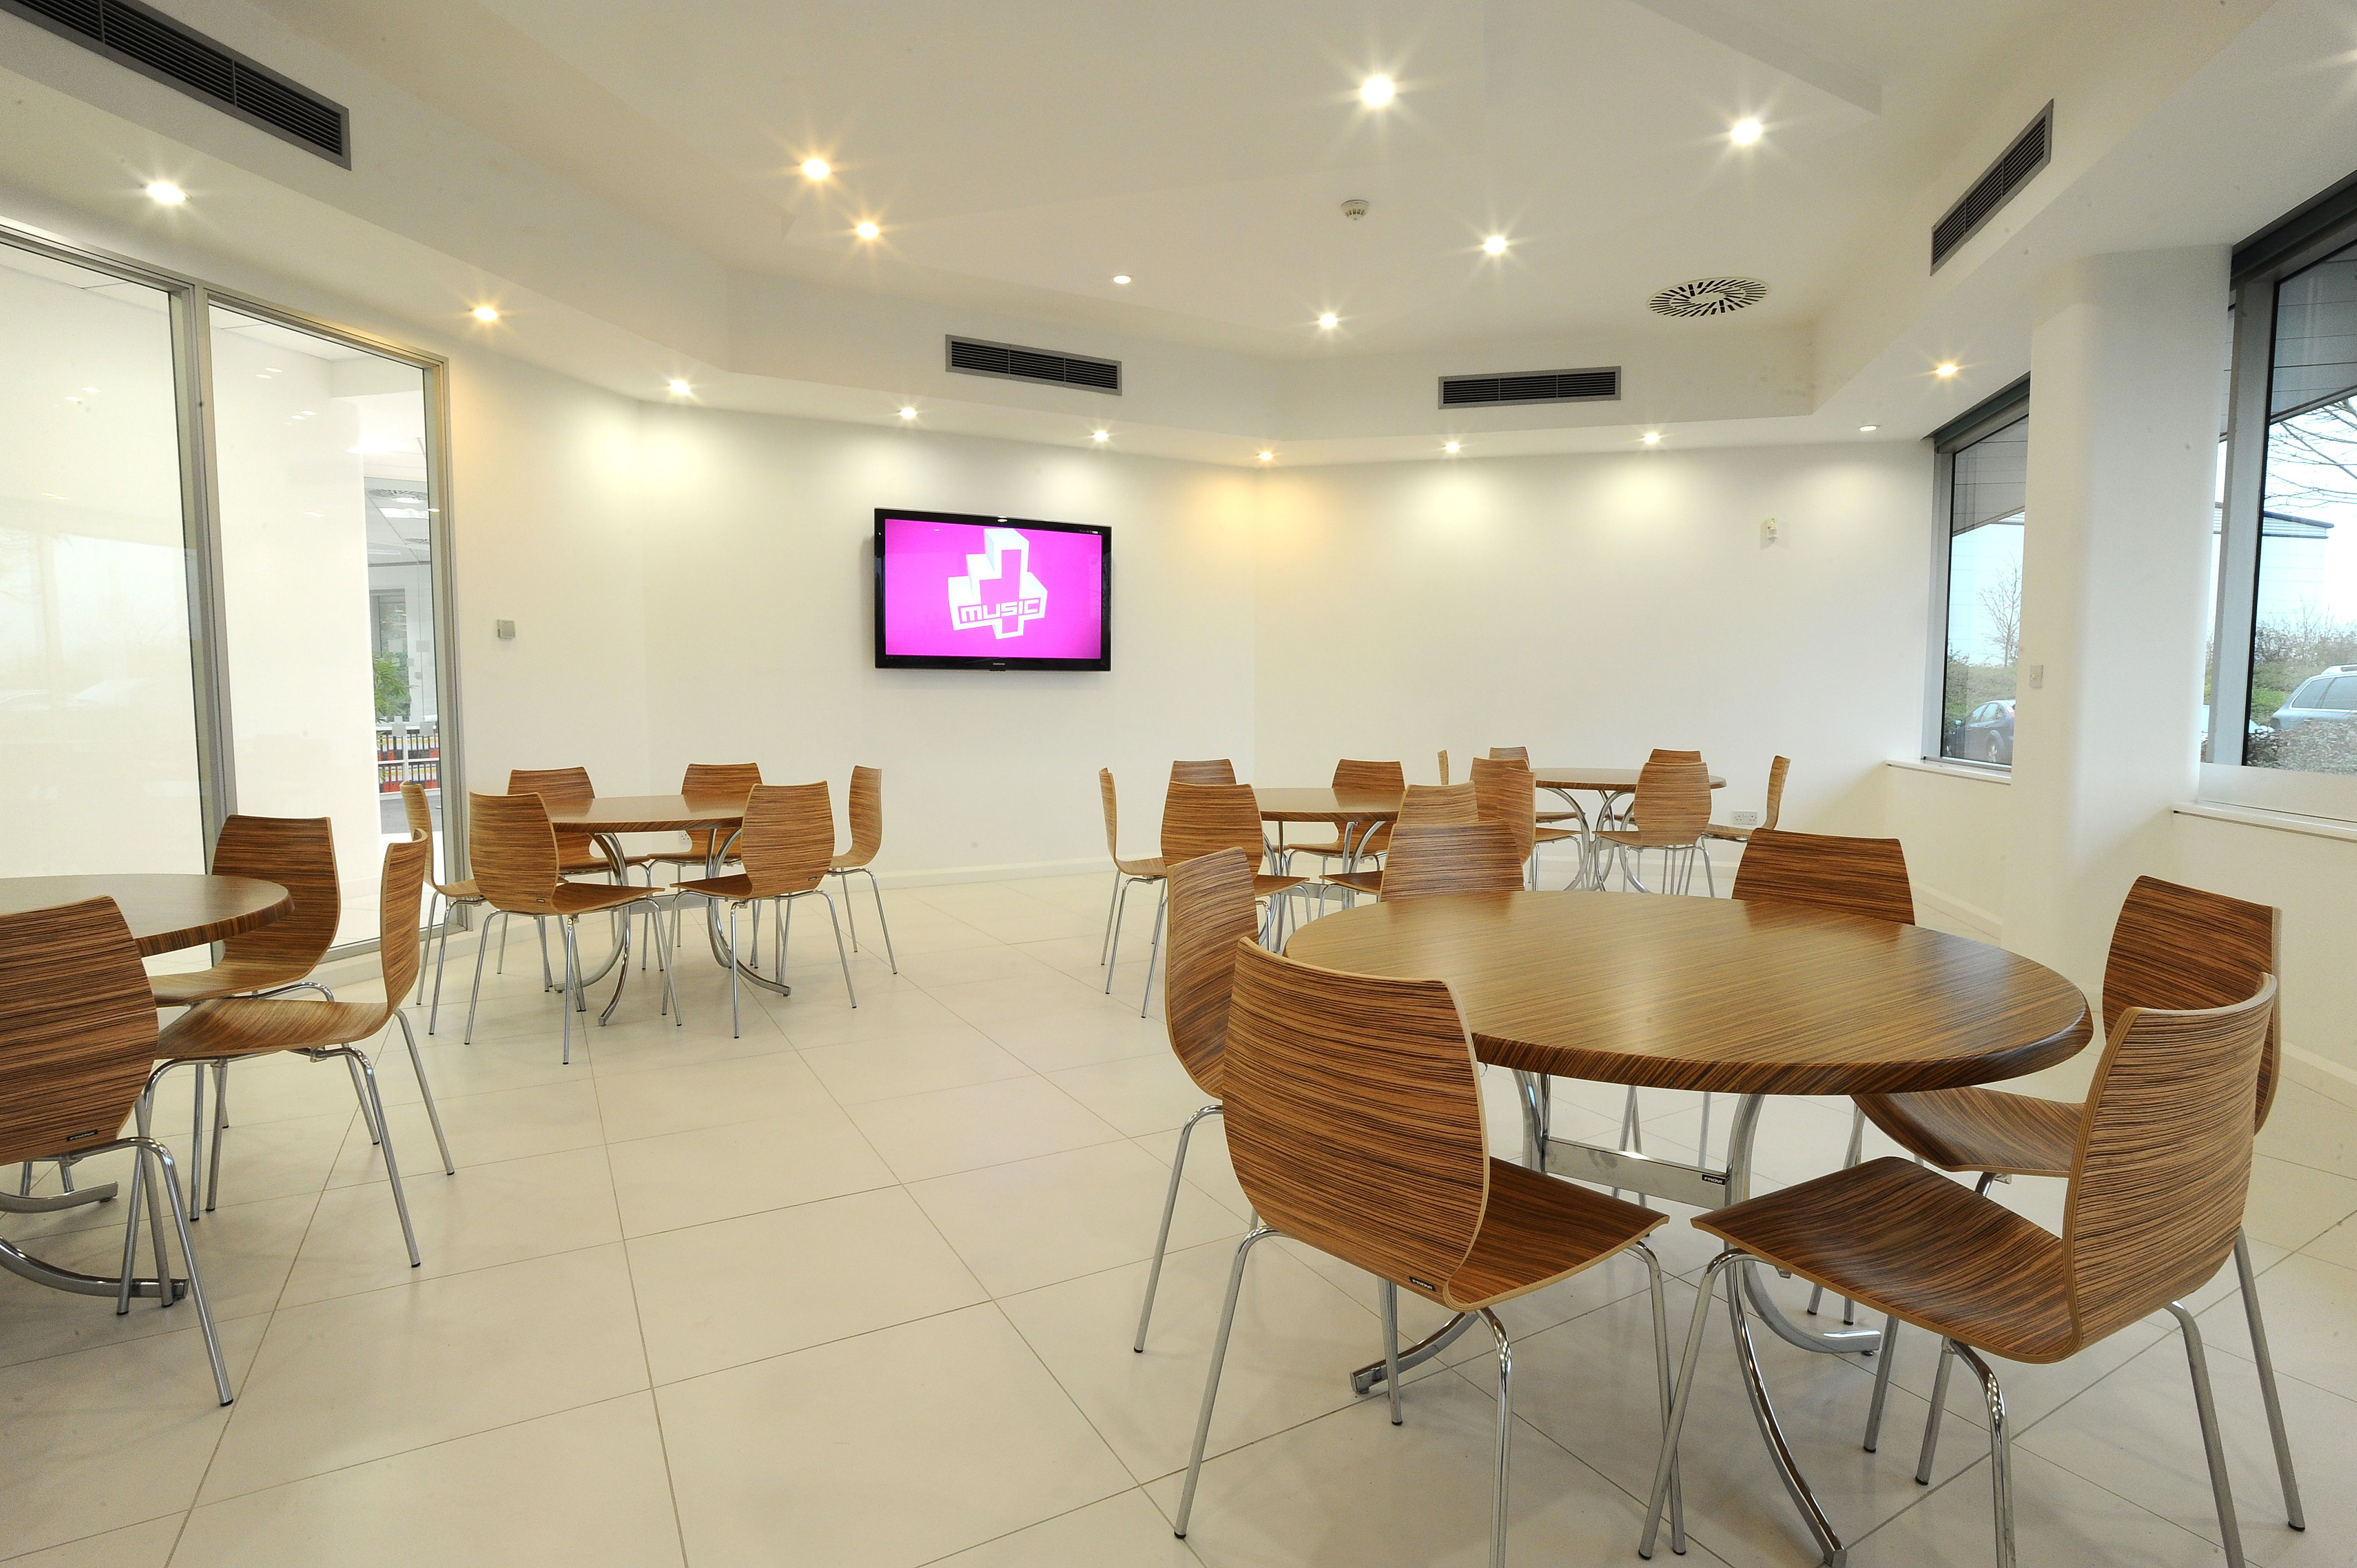 Beau Canteen Lighting Display We Installed For C J Haughey. If You Have A  Project That Requires